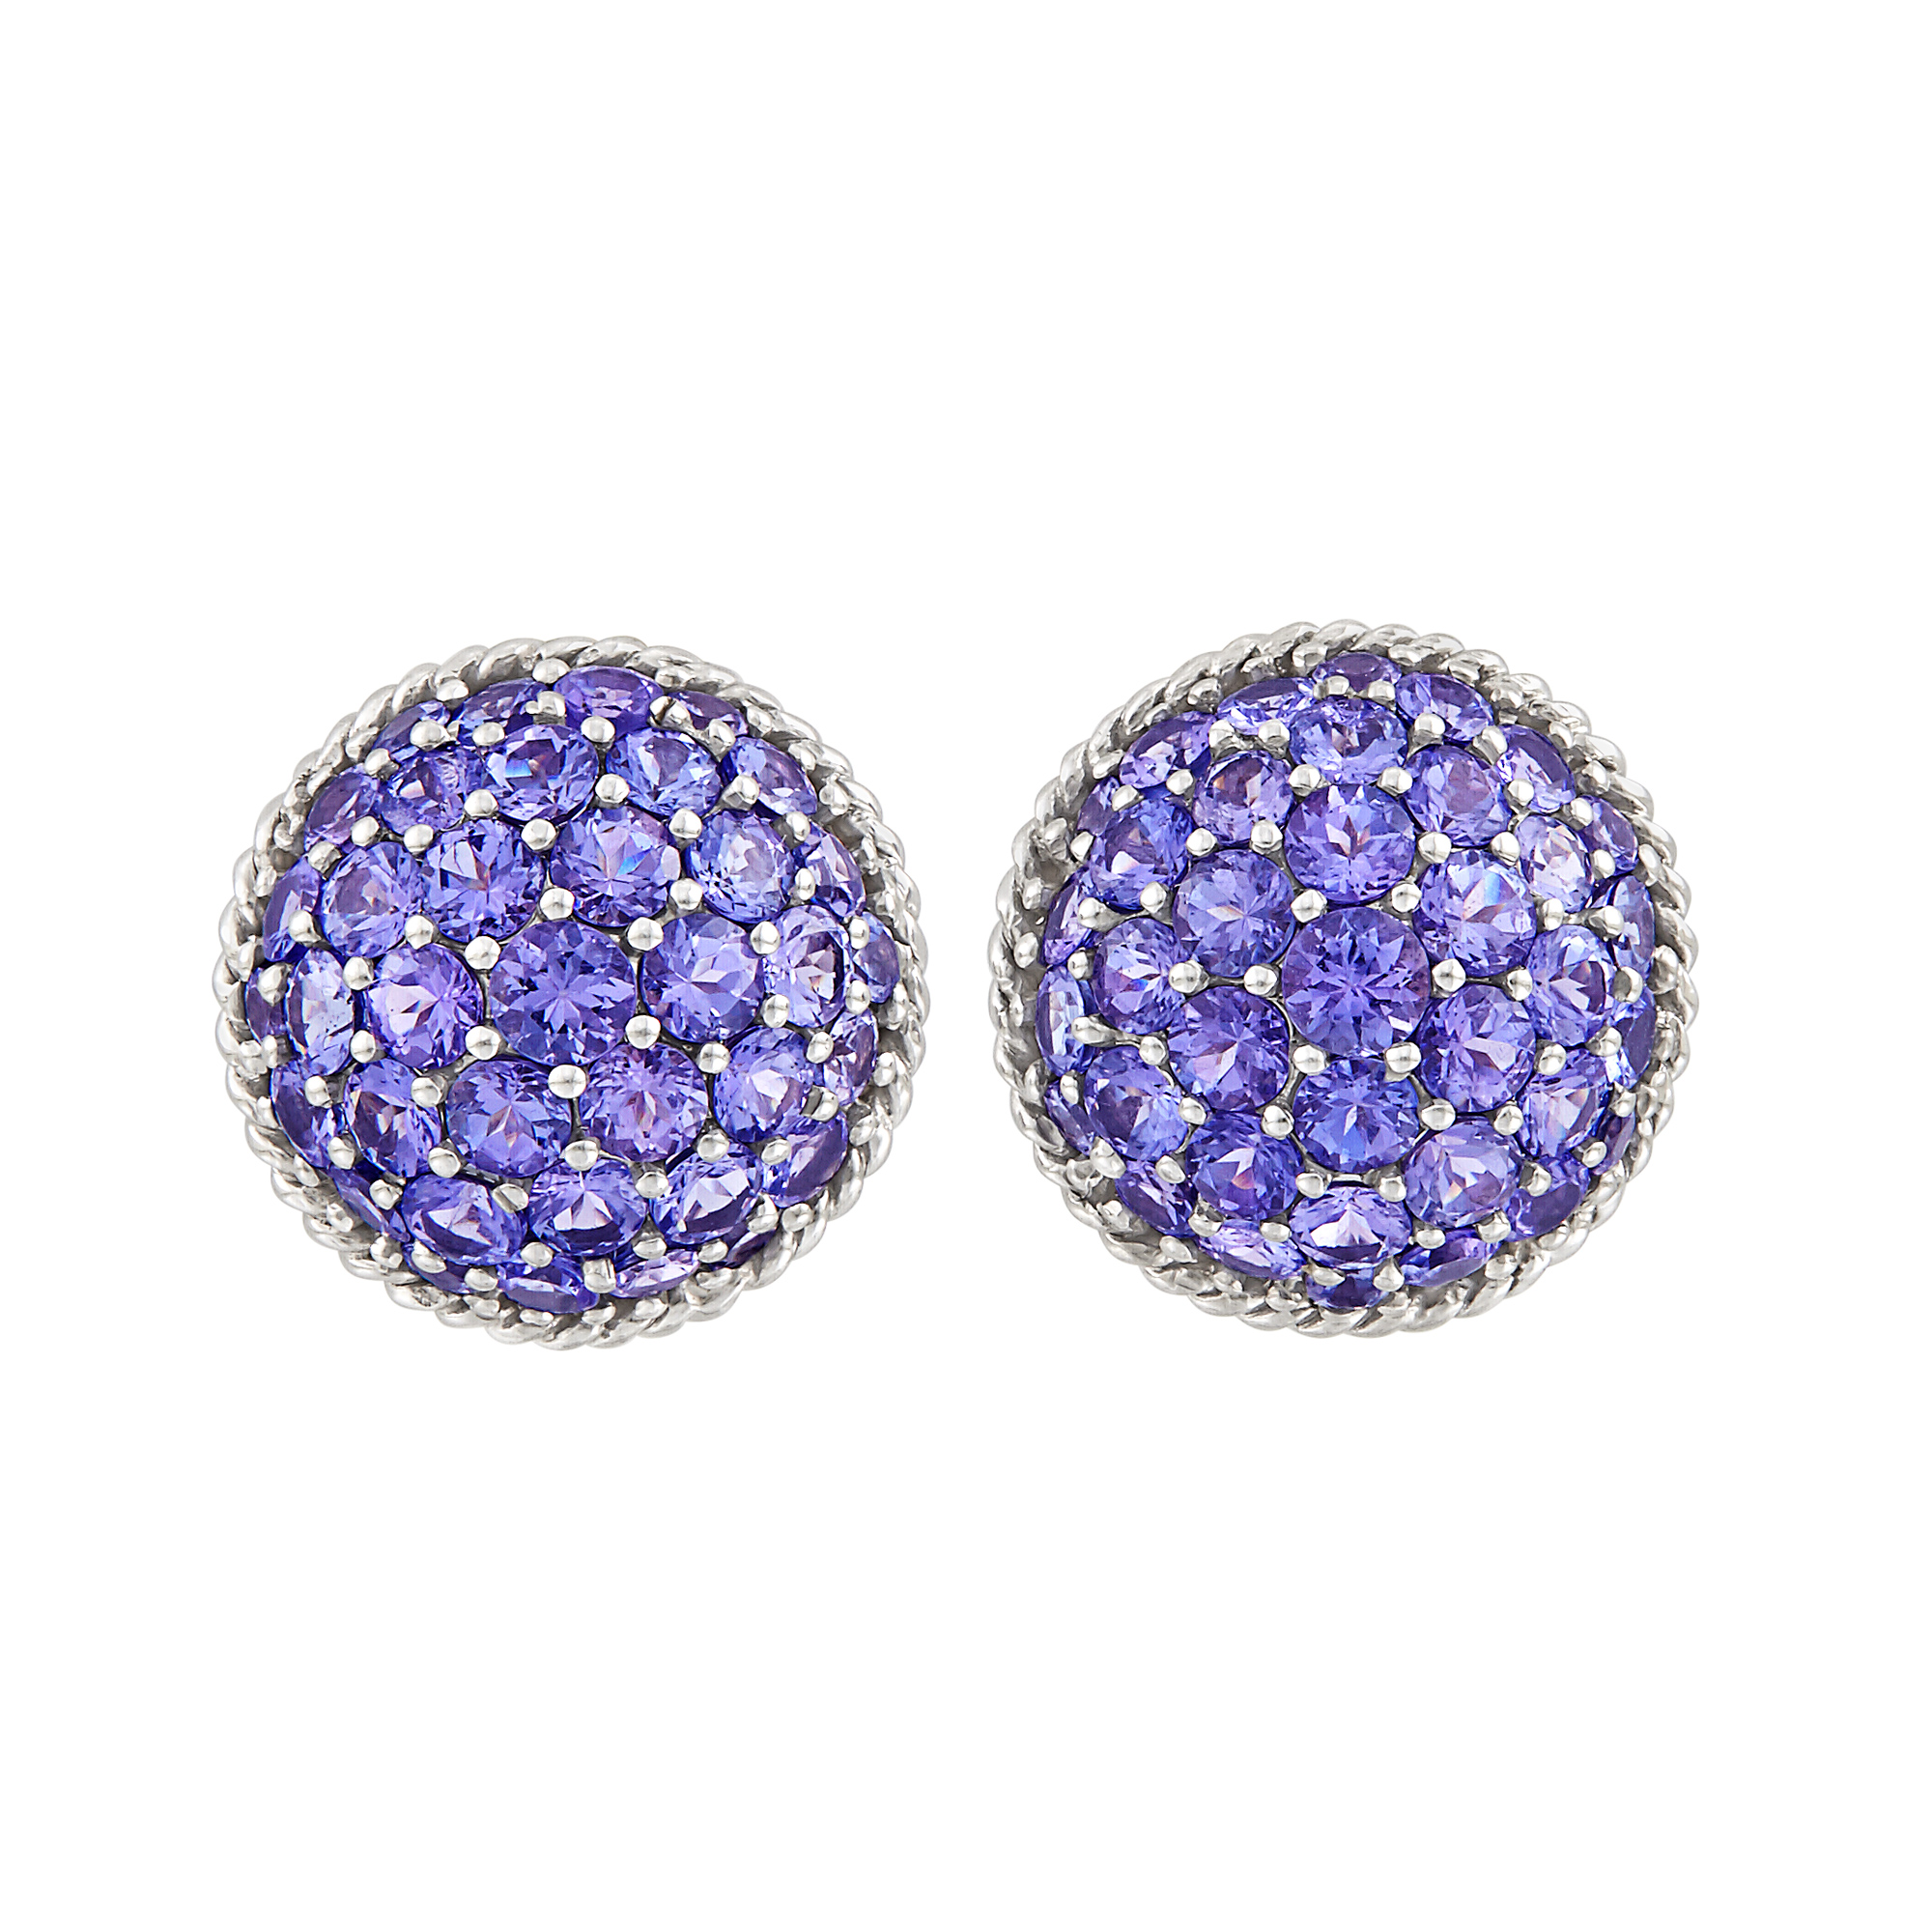 Lot image - Pair of White Gold and Violet Sapphire Bombé Earclips, Mish